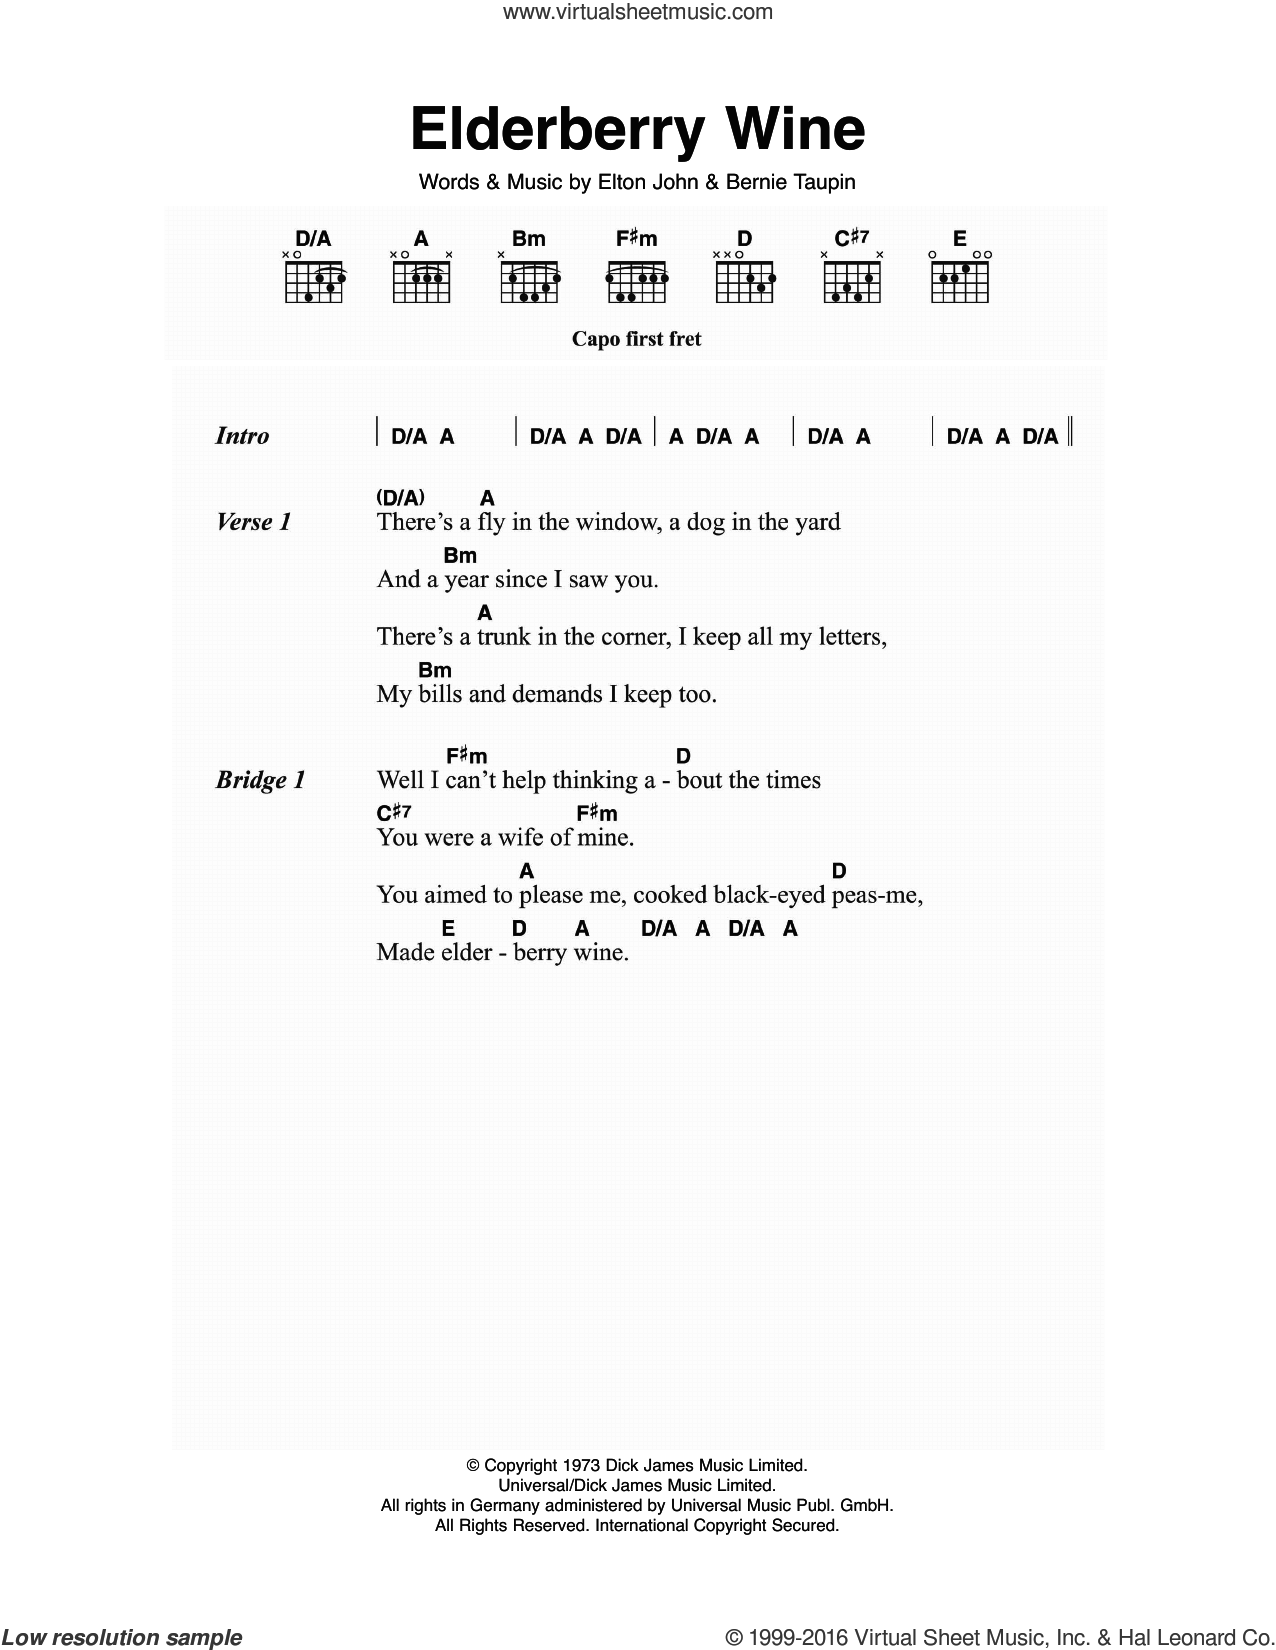 Elderberry Wine sheet music for guitar (chords) by Elton John and Bernie Taupin, intermediate skill level